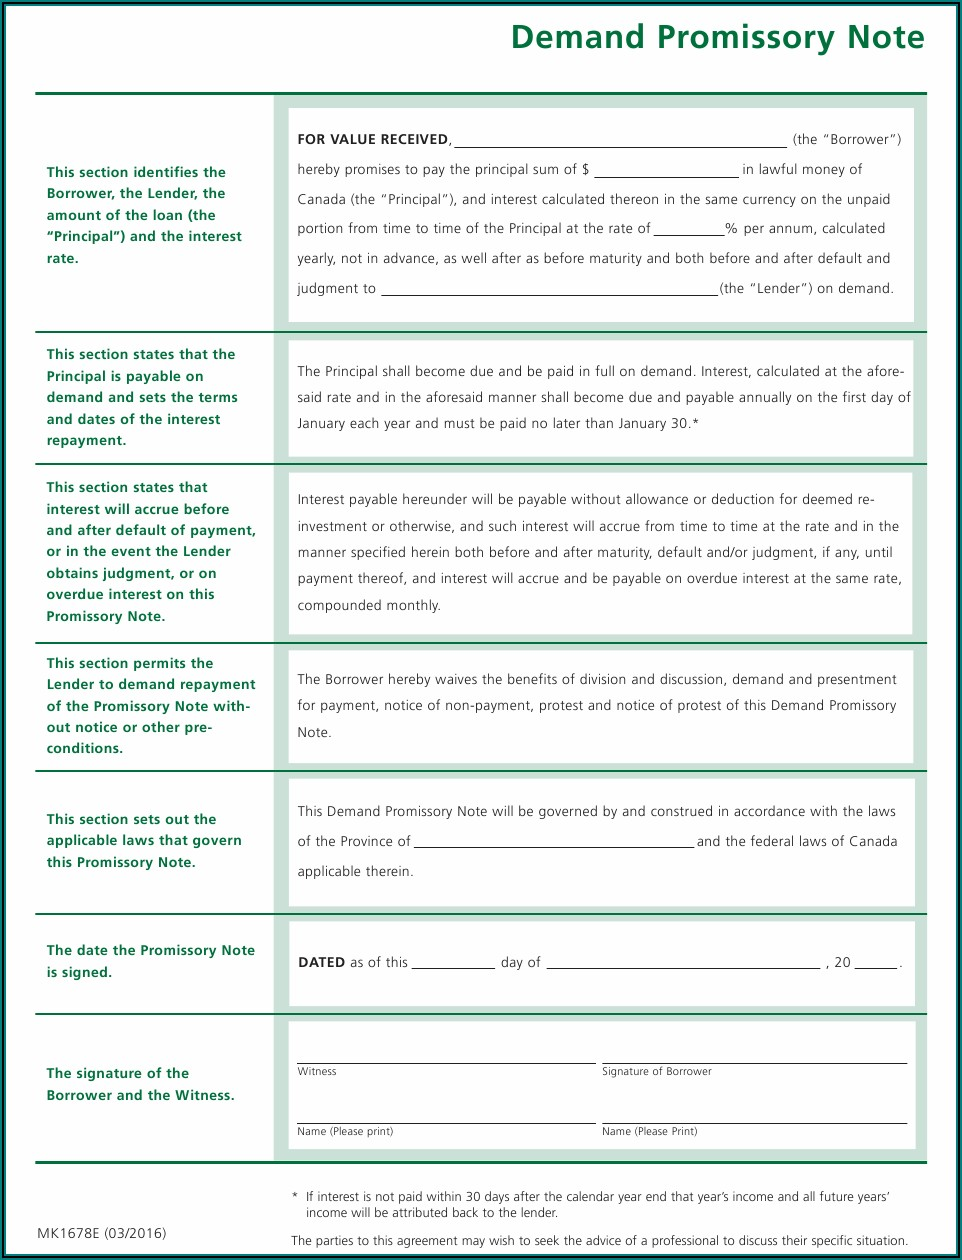 Demand Promissory Note Template Canada